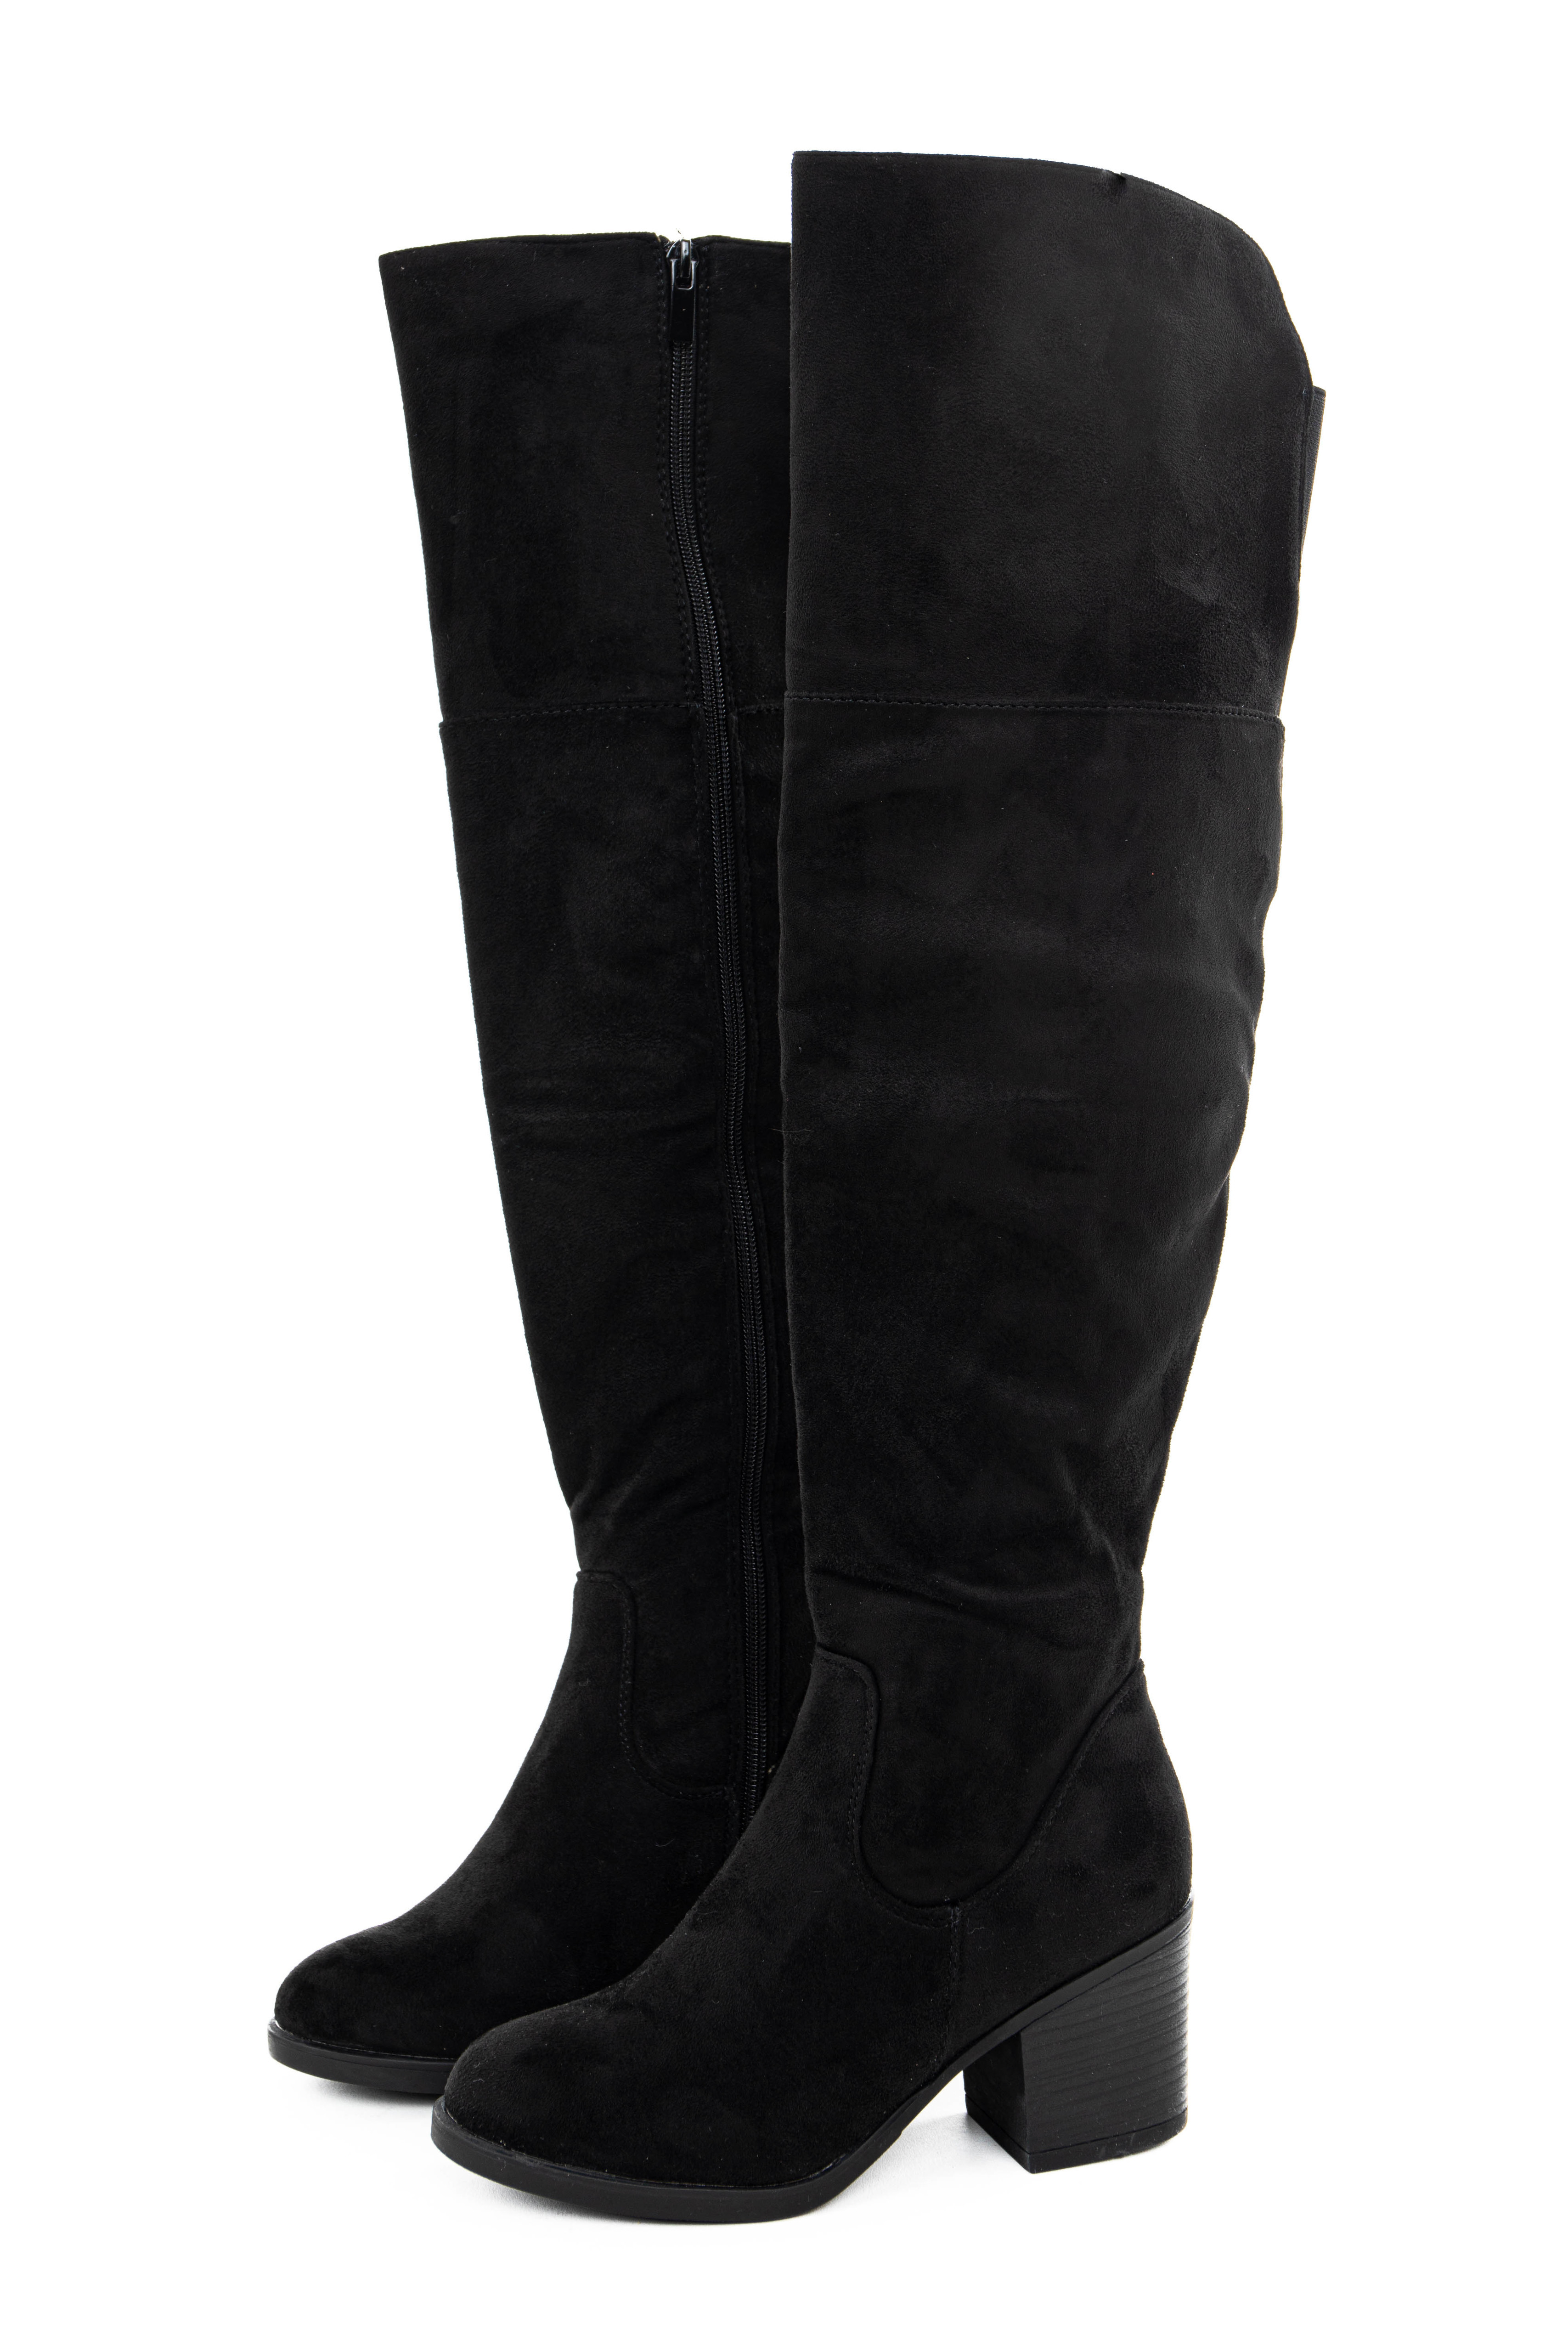 Black Faux Suede Knee High Stacked Heel Boots